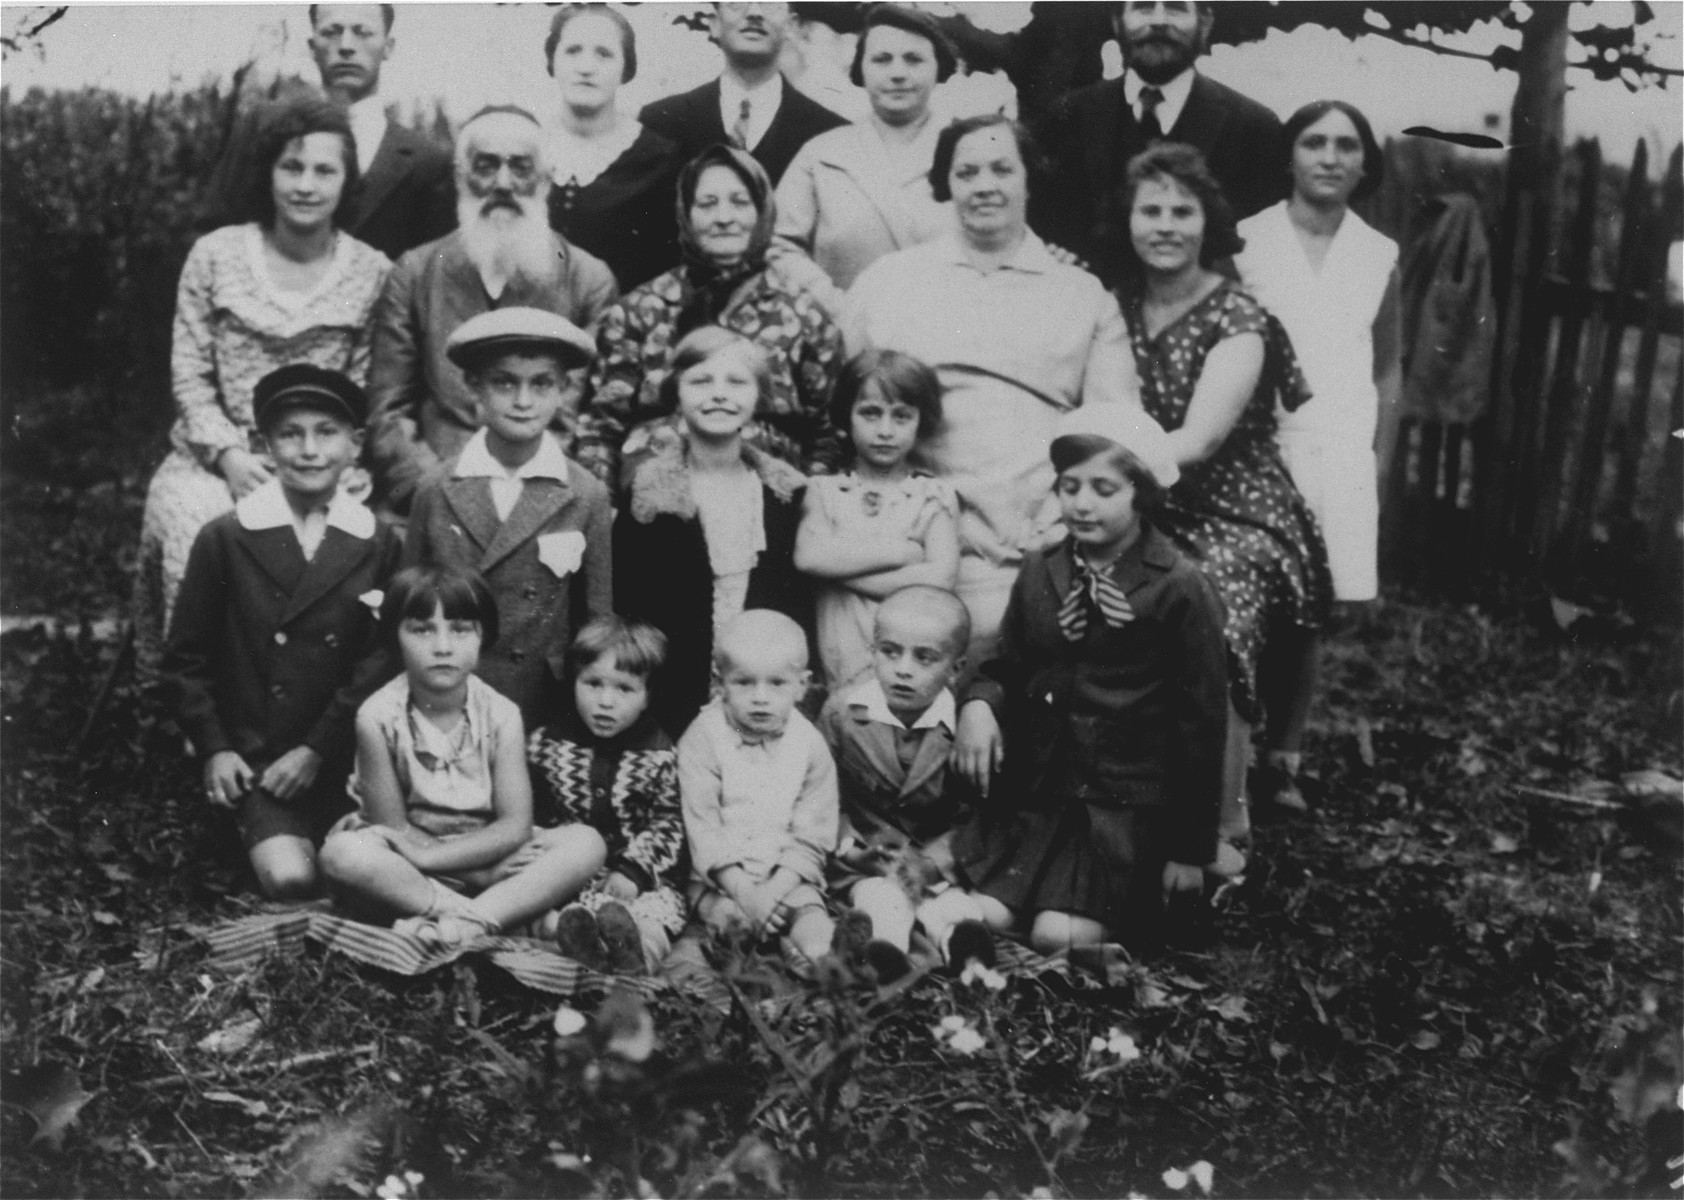 Portrait of the extended Gaenger/Petranker family.  Among those pictured are David and Frieda Petranker, (top row, third and fourth from the left); and Joseph and Chana Leah Petranker (third row, second and third from the left).